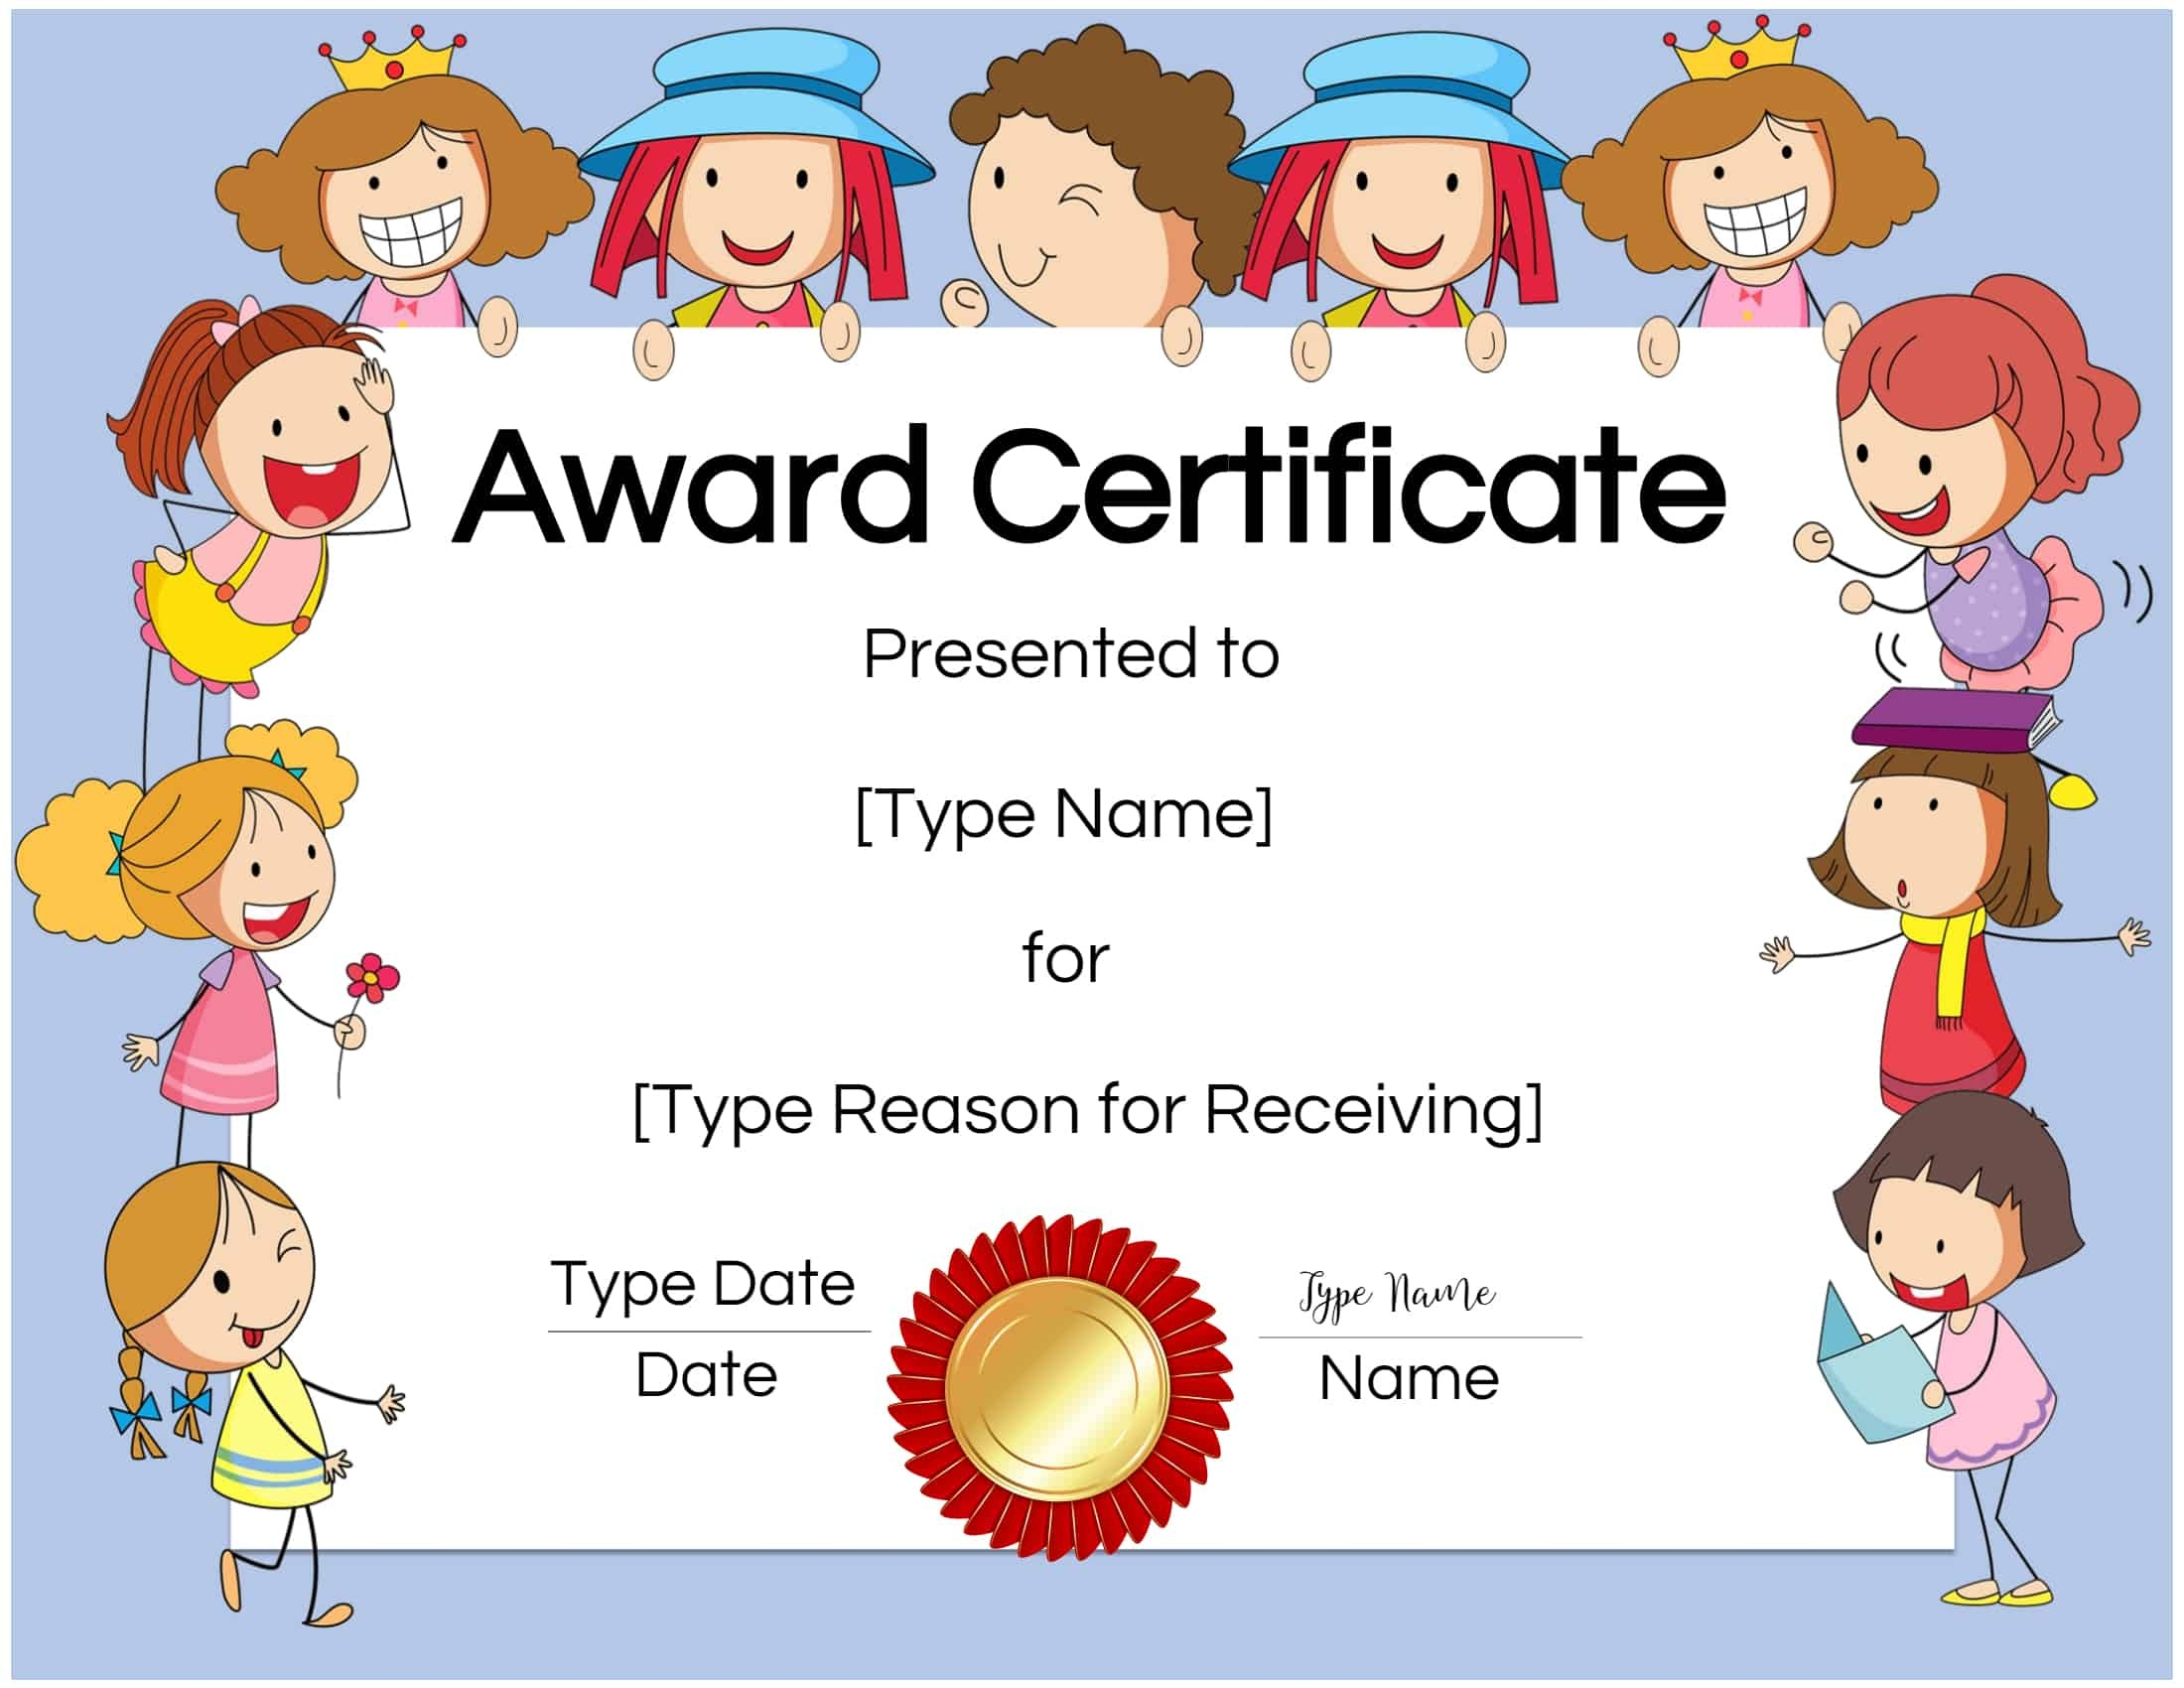 Free Custom Certificates For Kids   Customize Online & Print At Home - Free Printable Honor Roll Certificates Kids